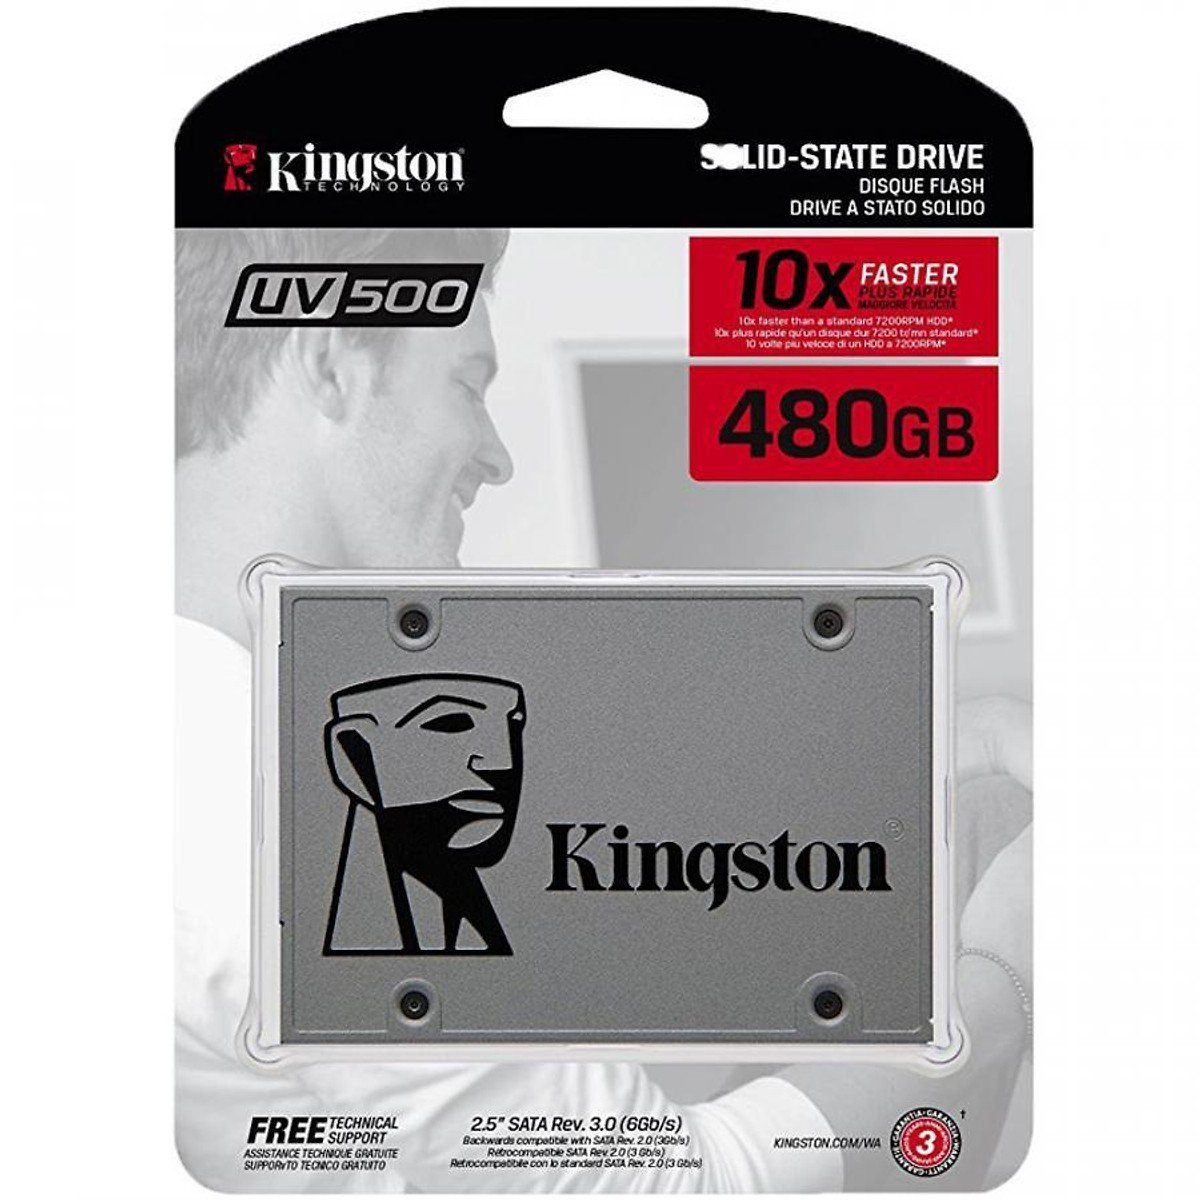 SSD Kingston UV500 3D-NAND SATA III 480GB